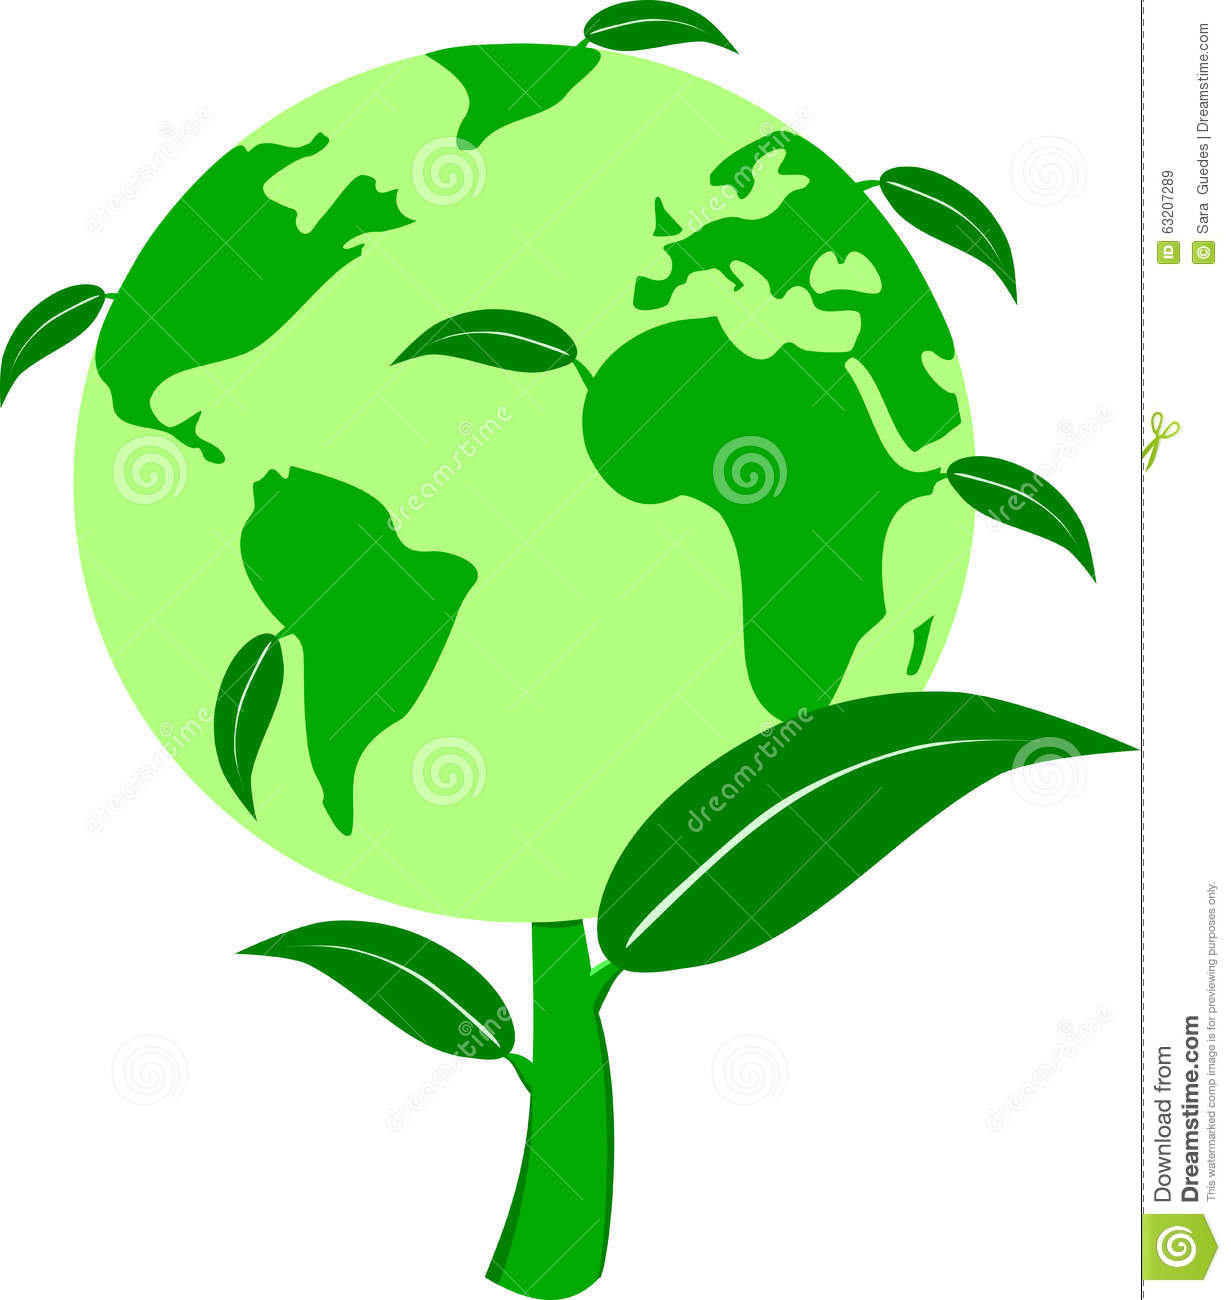 Green World plant stock vector. Illustration of background ...